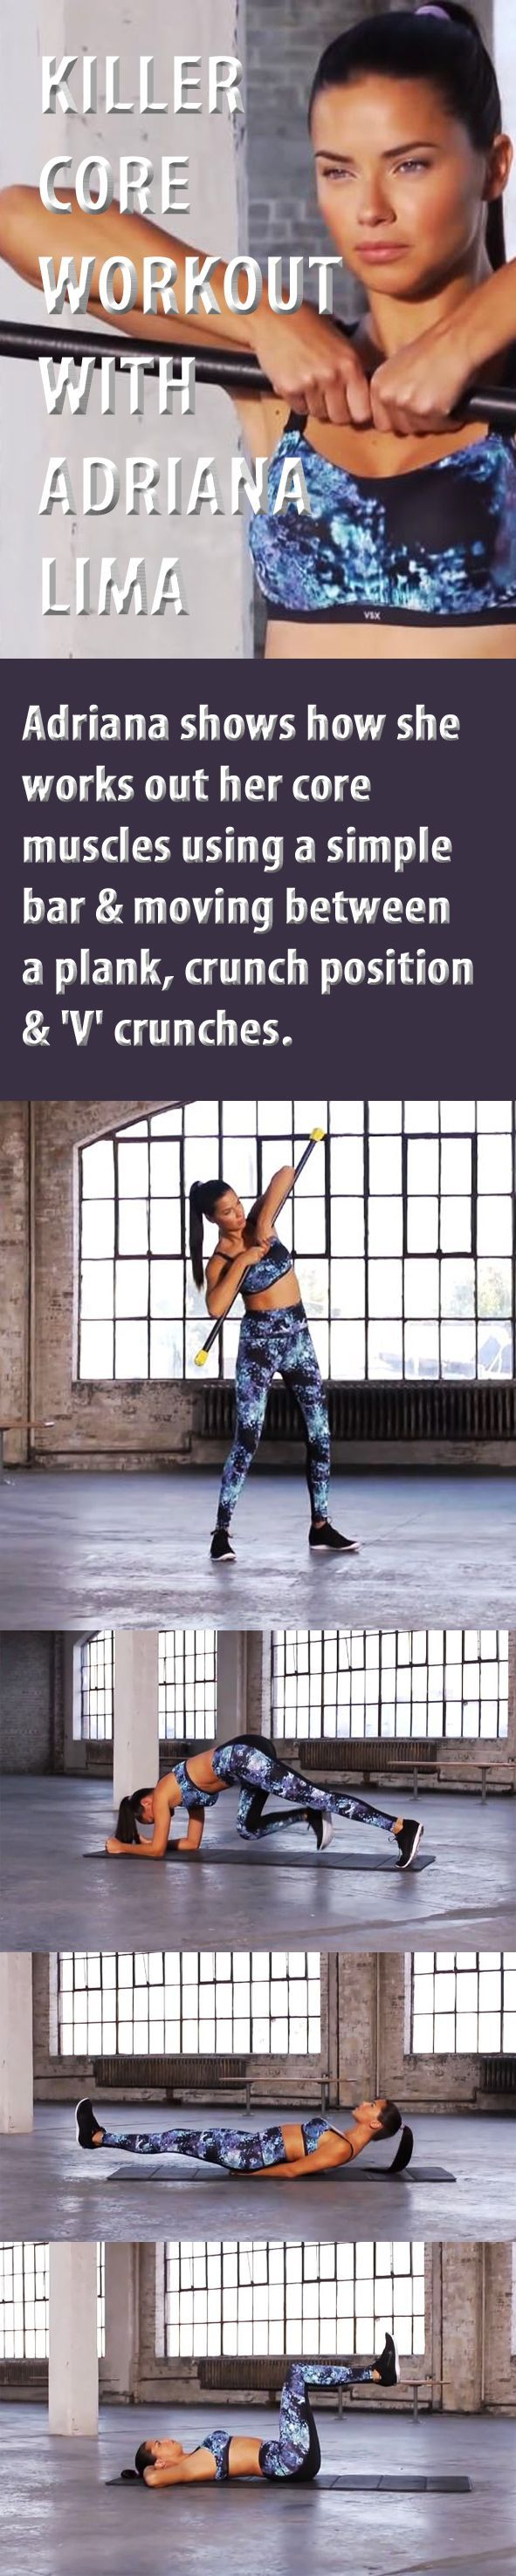 Killer core workout with Adriana Lima.